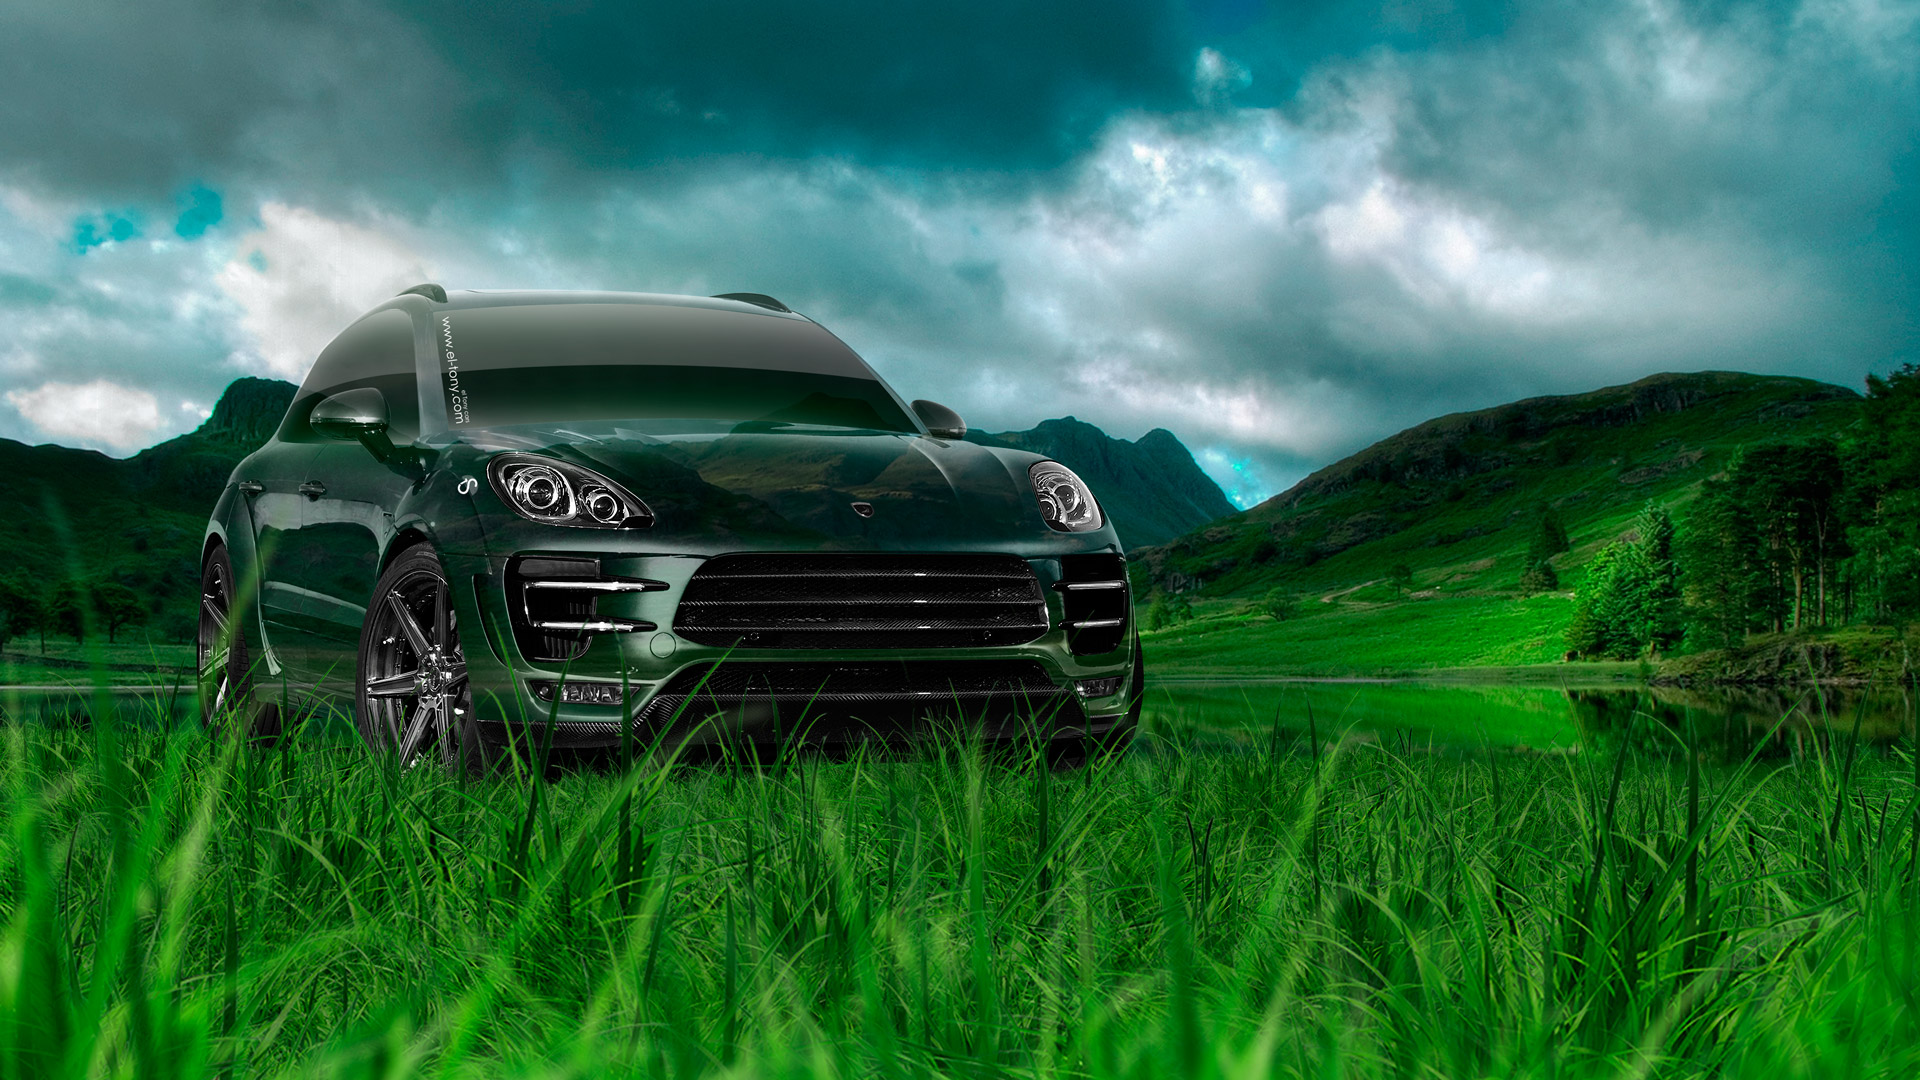 Porsche-Macan-Crossover-Crystal-Nature-Car-2014-Green-Grass-HD-Wallpapers-design-by-Tony-Kokhan-[www.el-tony.com]